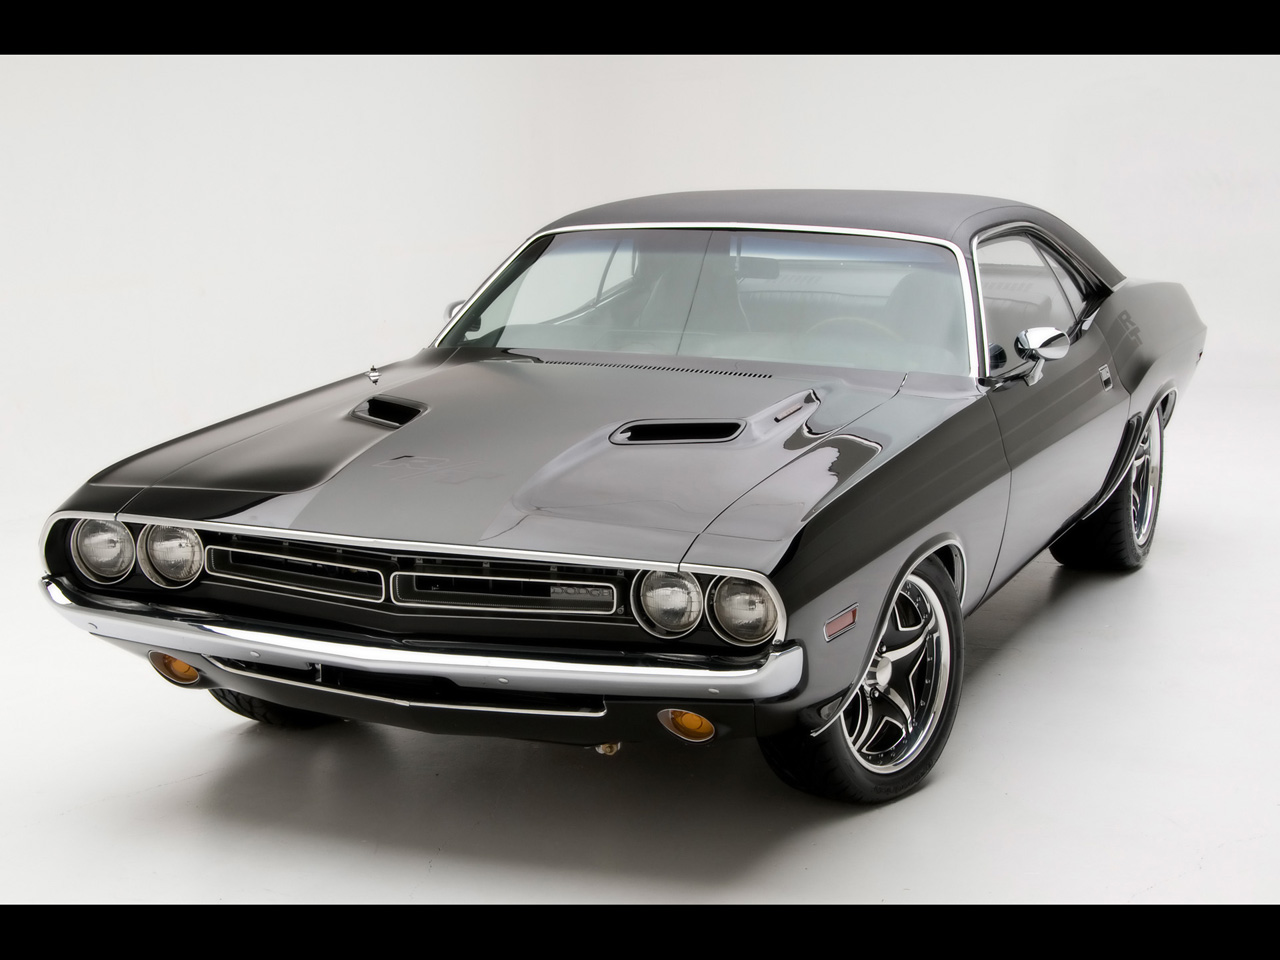 HdCar wallpapers: cool muscle car wallpapers